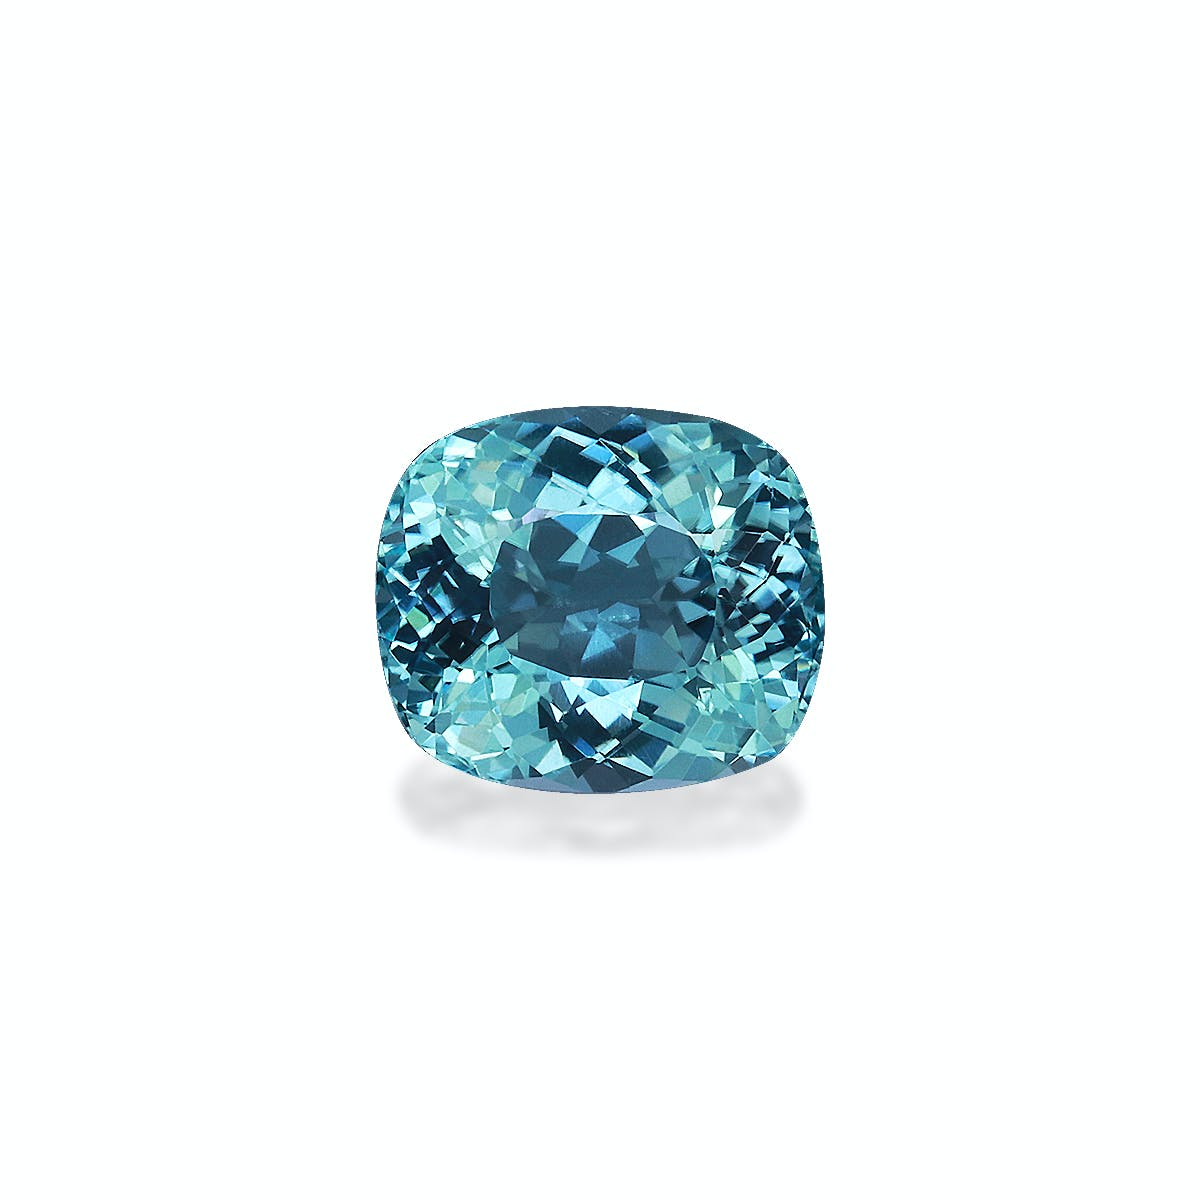 PARAIBA OPAL 8.00 MM ROUND CUT NEON BLUE COLOR ALL NATURAL SOLD PER STONE F-278